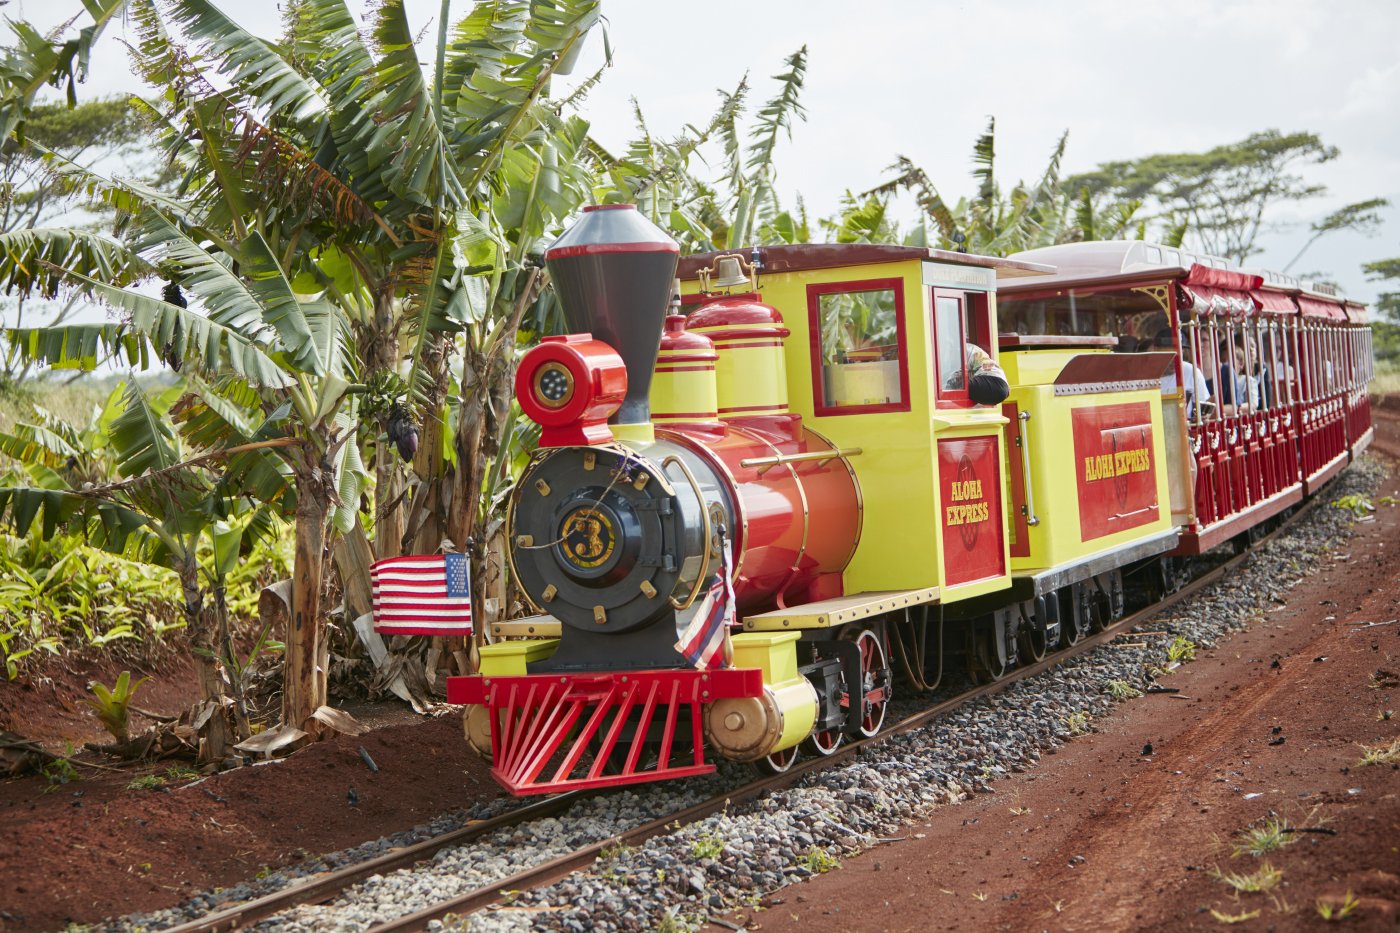 The Pineapple Express was a fun ride of twenty-ish minutes, viewing fruit and crops, photo from their web site